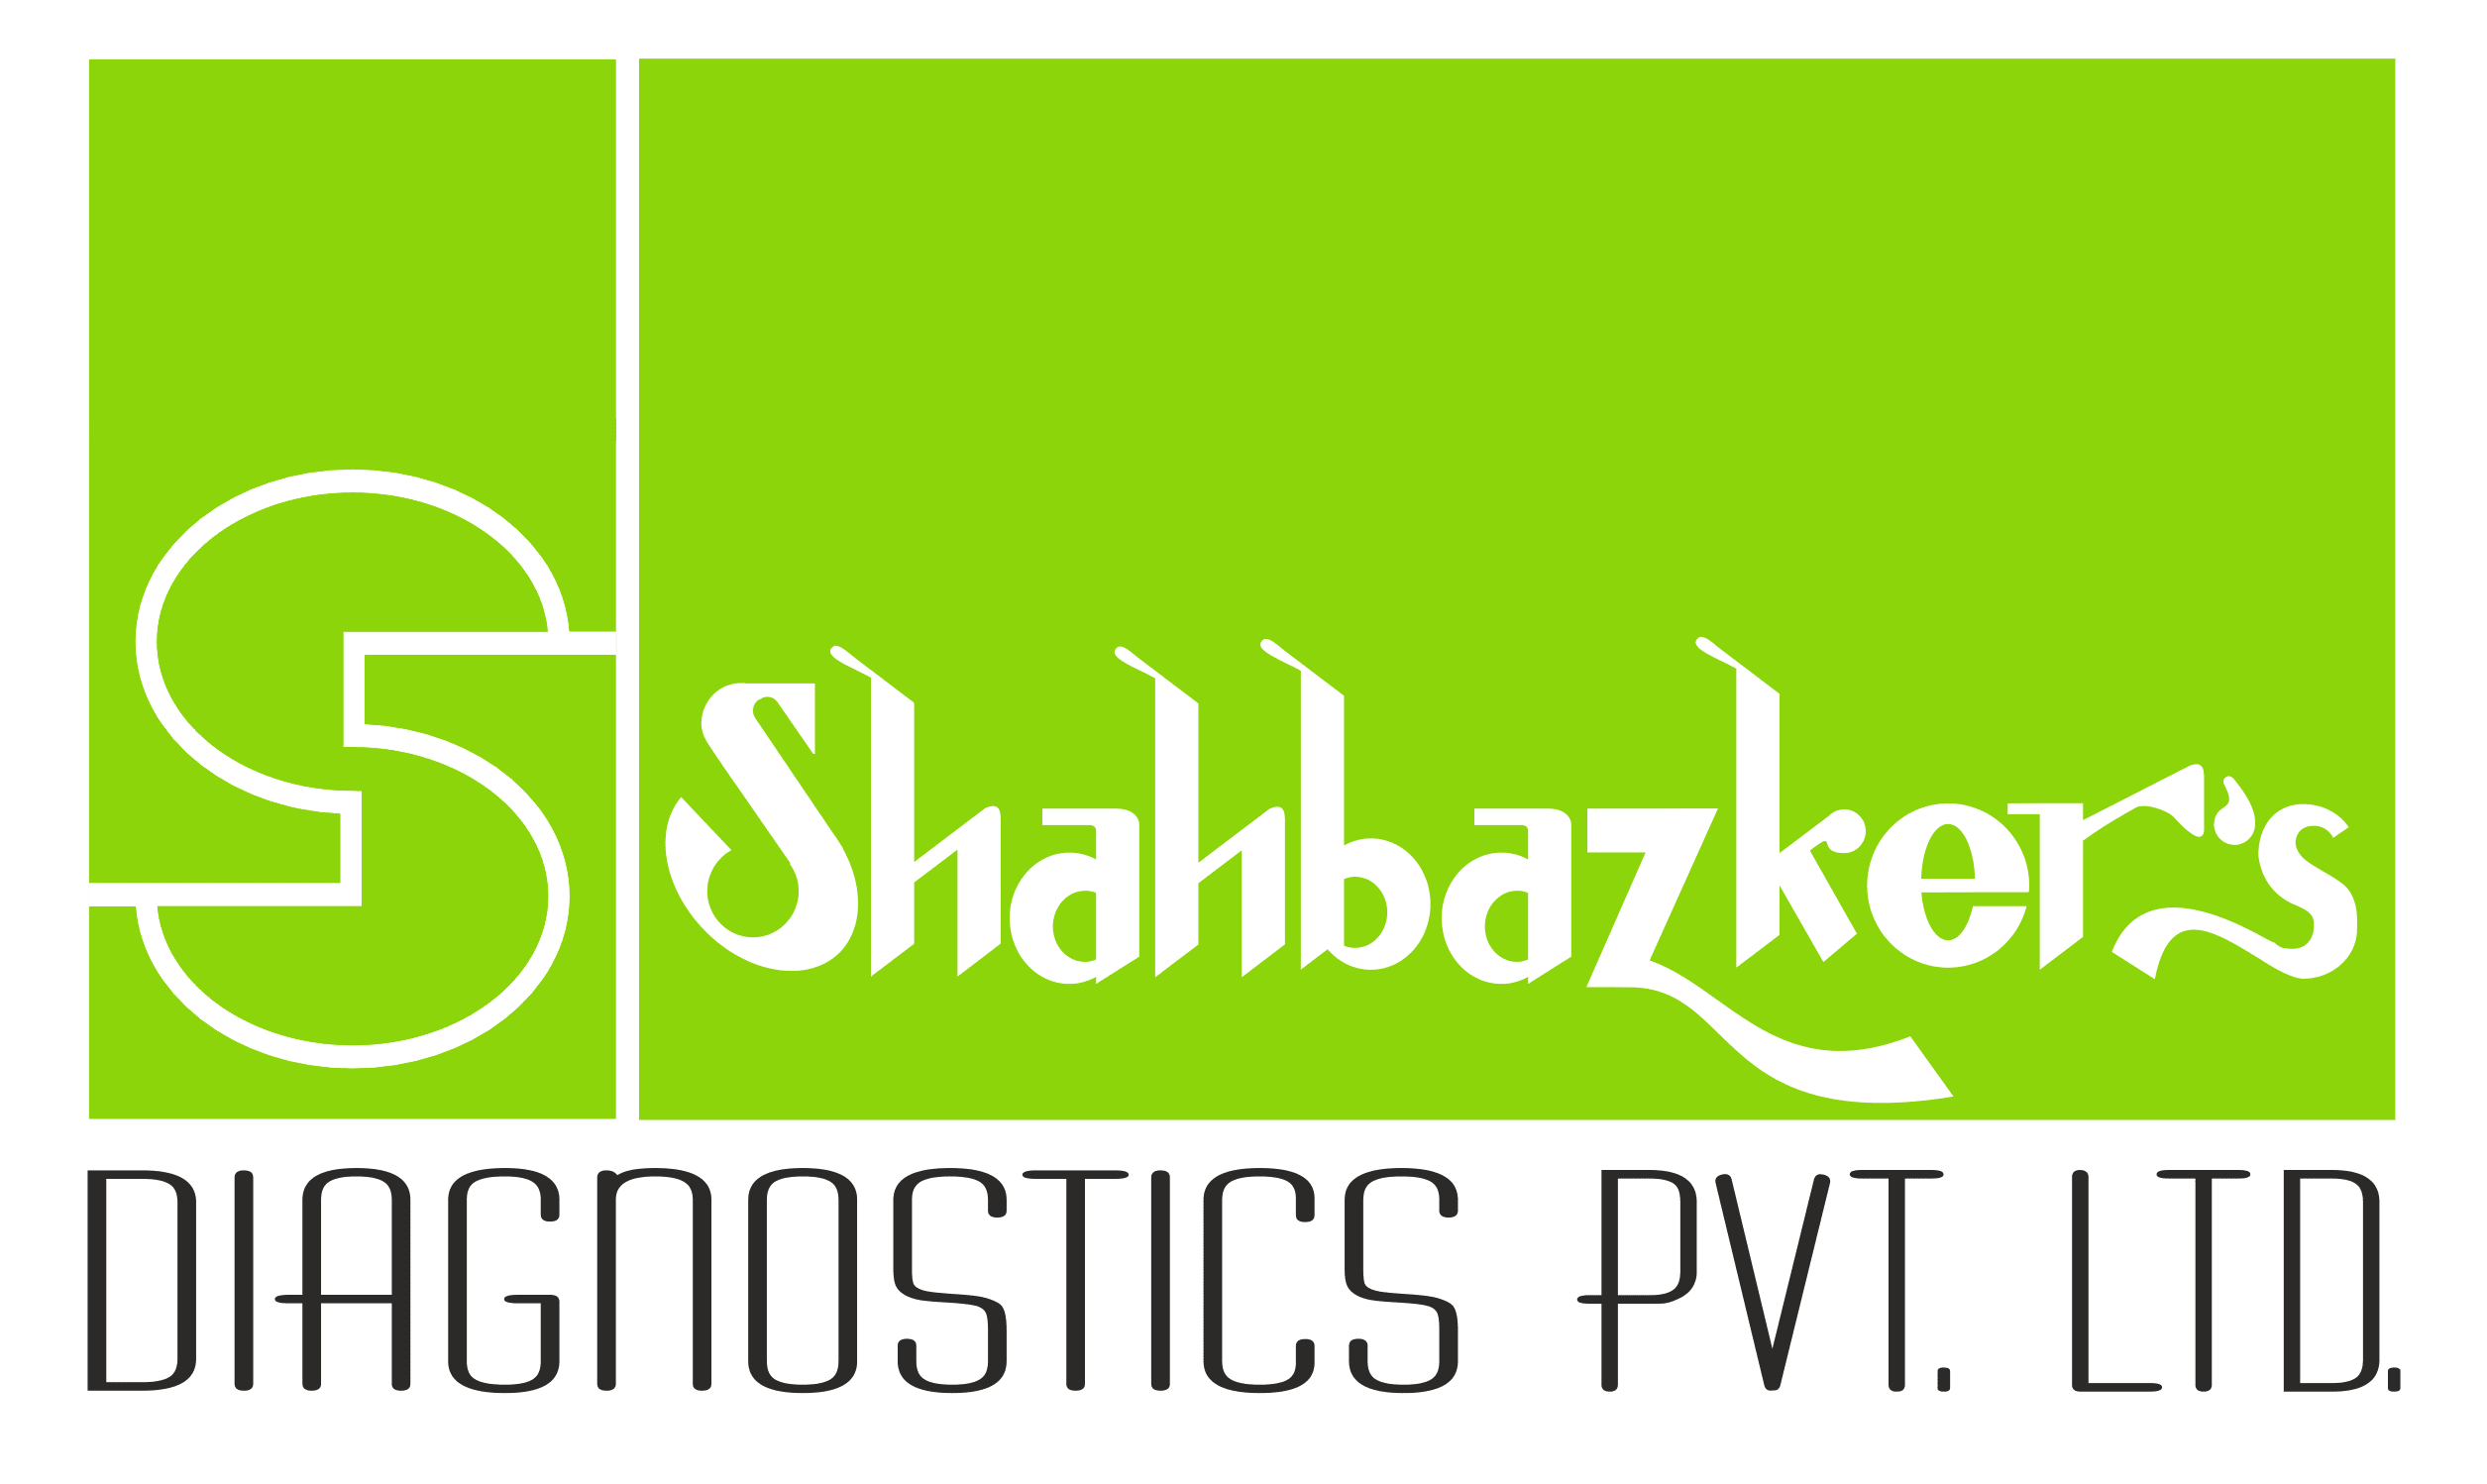 Shahbazker's Diagnostics